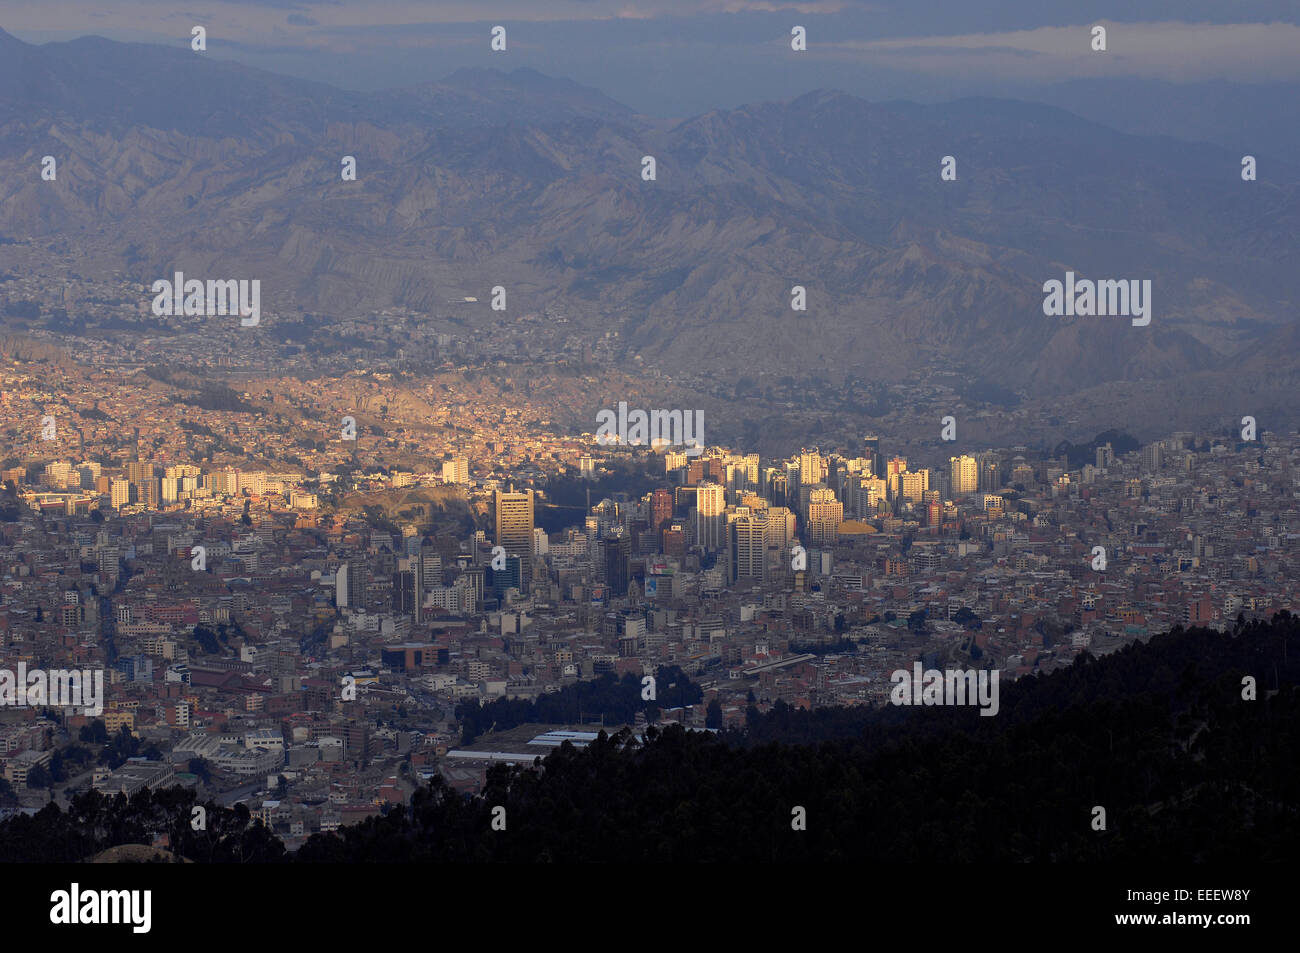 The City Of La Paz Bolivia Sits An An Elevation Of Feet - Elevation in feet above sea level